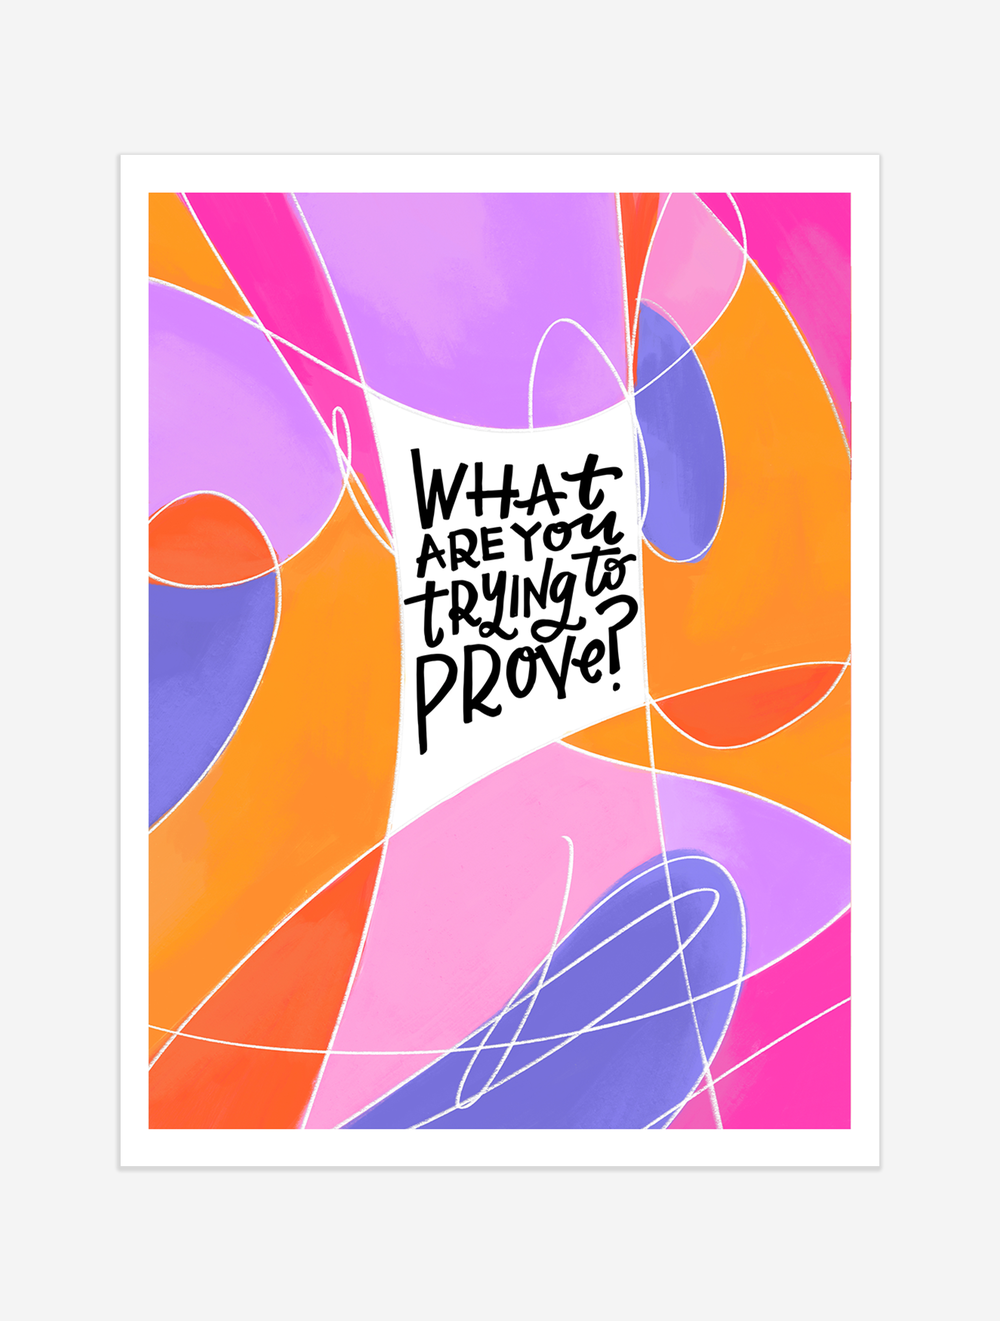 A reminder to consider what you're trying to learn rather than what you're trying to prove. $25 giclee print available at the Made Vibrant Art Shop.